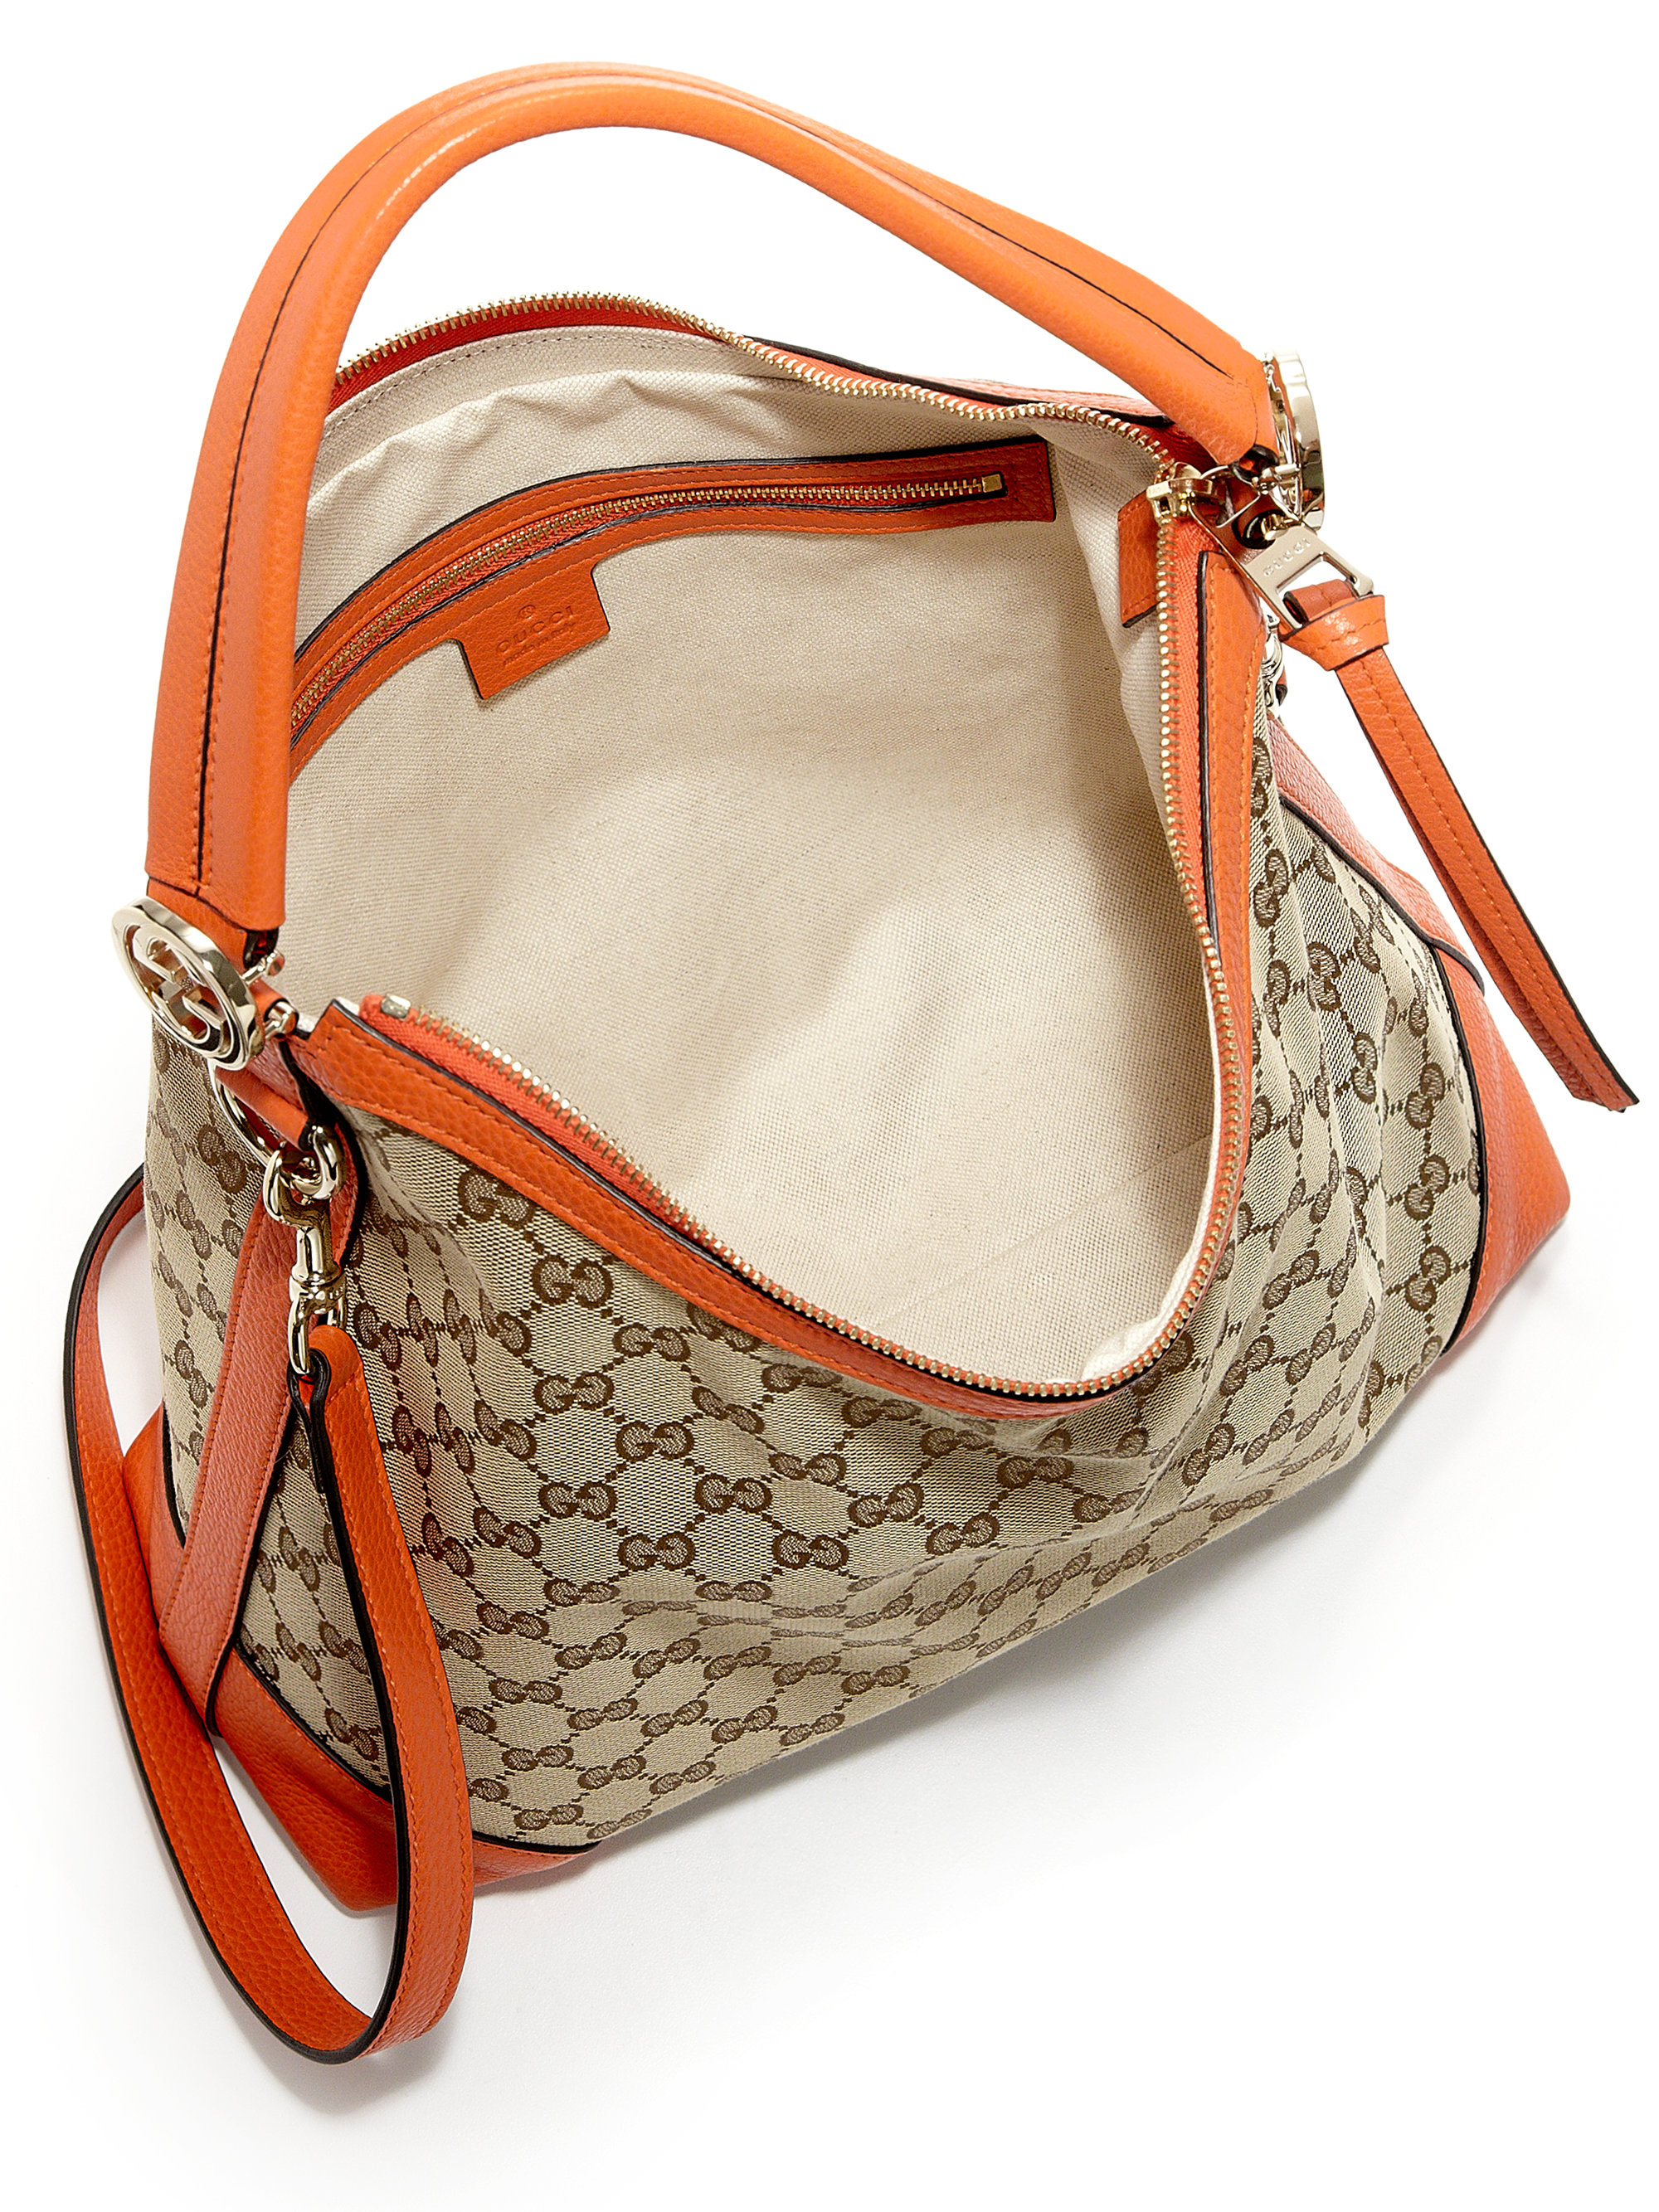 Gucci Miss Gg Small Original Gg Canvas Hobo Bag in Orange | Lyst